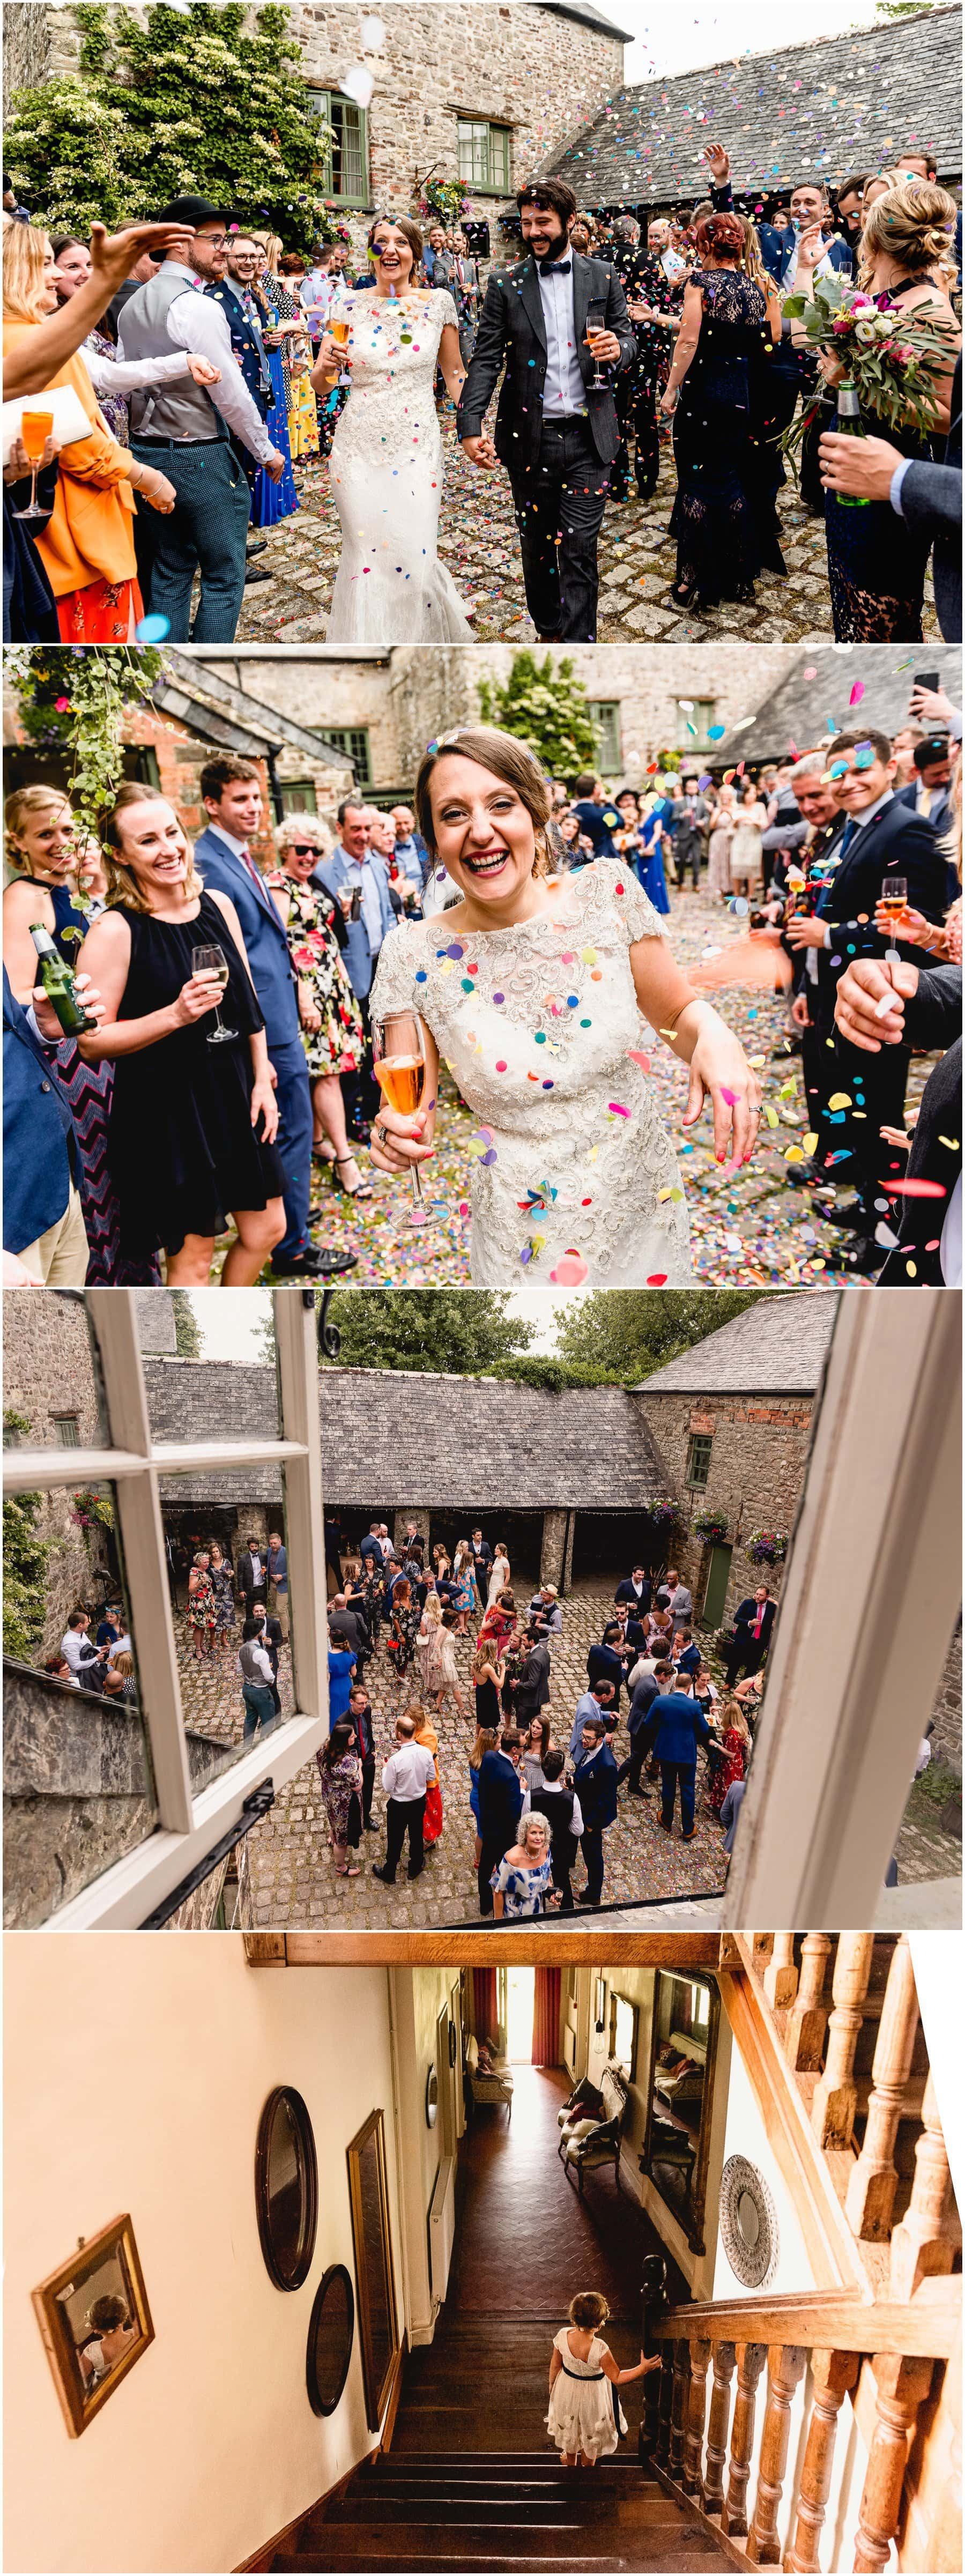 Colourful confetti tunnel during summer wedding outside.